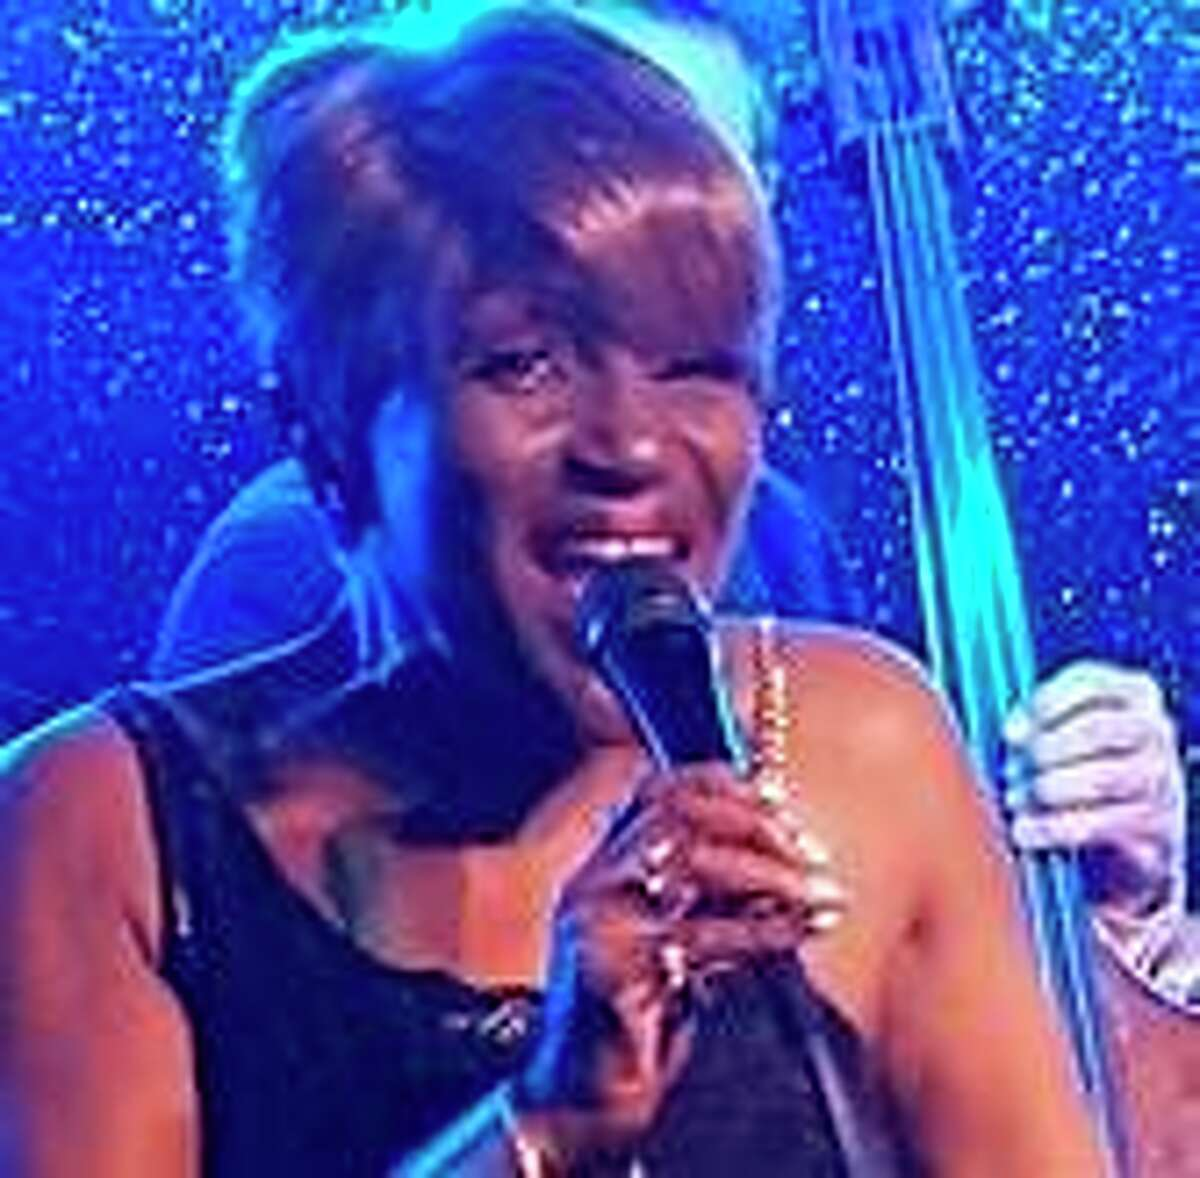 Holly McGuire with the Kevin O'Connell Trio will perform during theManistee Shoreline Showcase at7 p.m. on Tuesday at the First Street Beach Rotary Gazebo. (Courtesy photo)